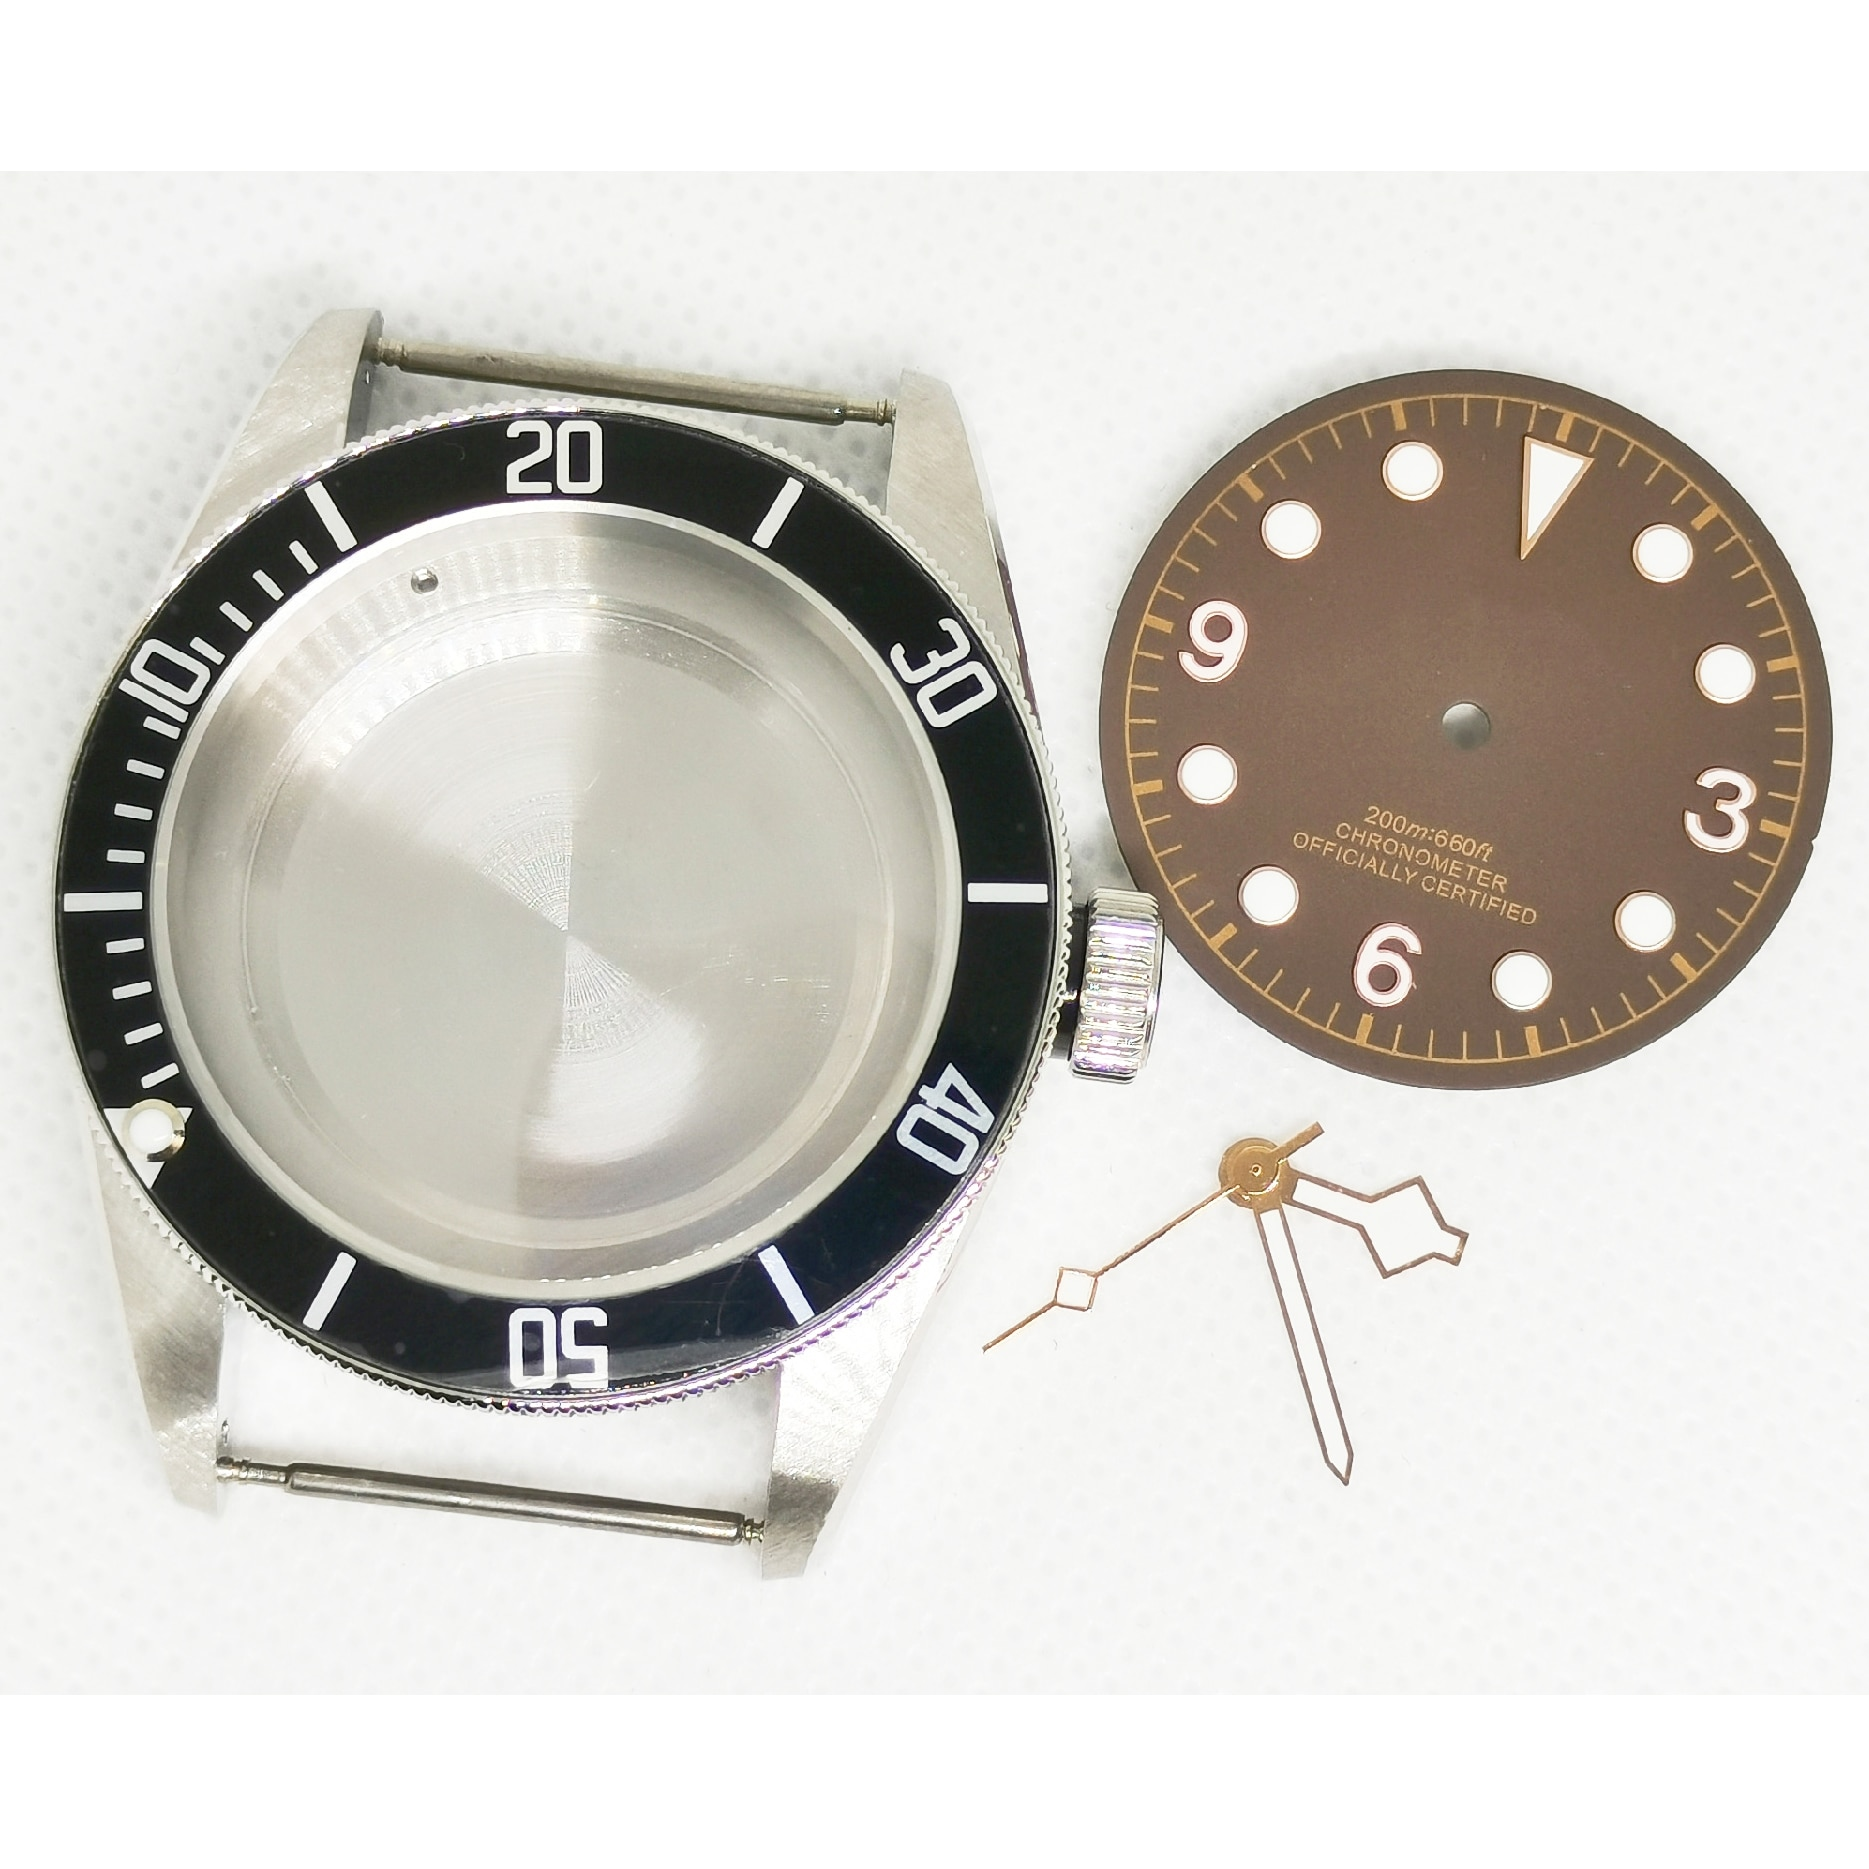 New 40MM Watch Part 316 Stainless Steel Case Add Luminous Dial And Hands Fit Miyota8215 8205 Eta2836 Automatic Movement enlarge